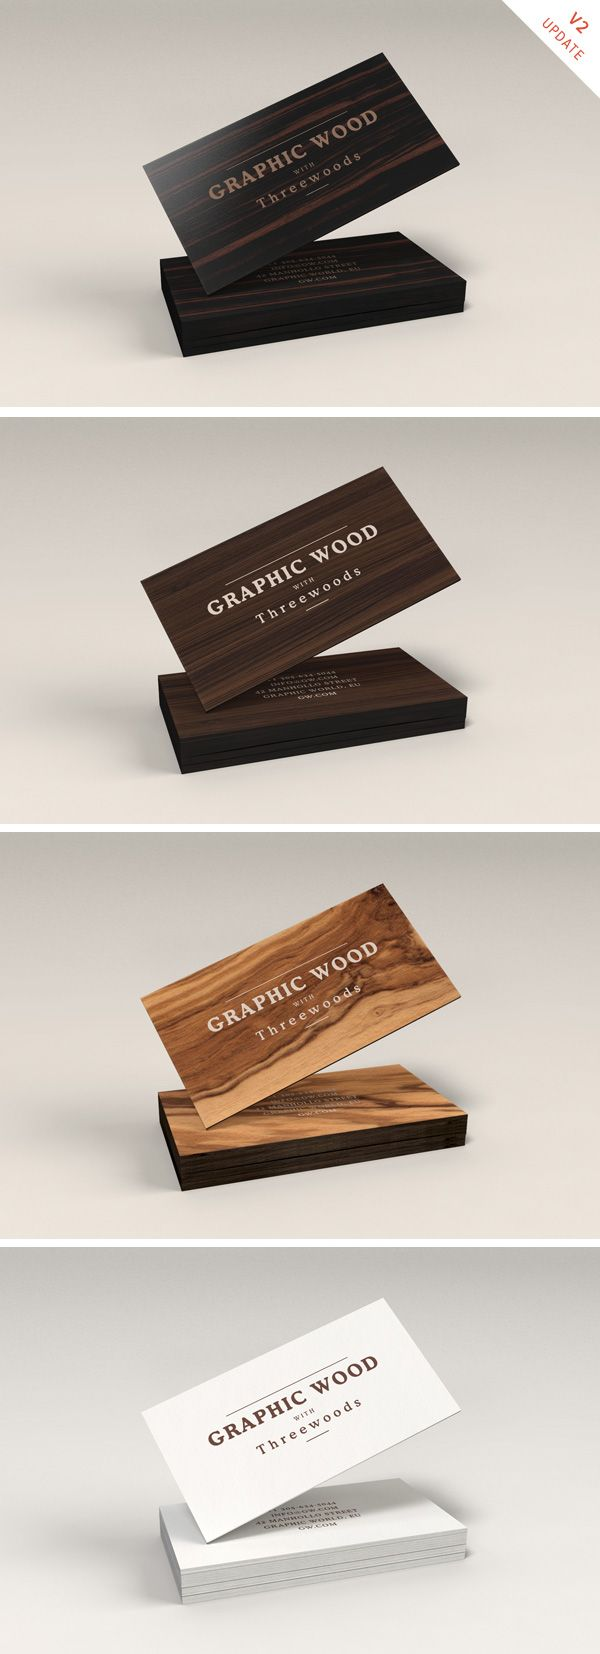 Here's a PSD mock-up designed for those who love the natural look and feel of wooden business cards...